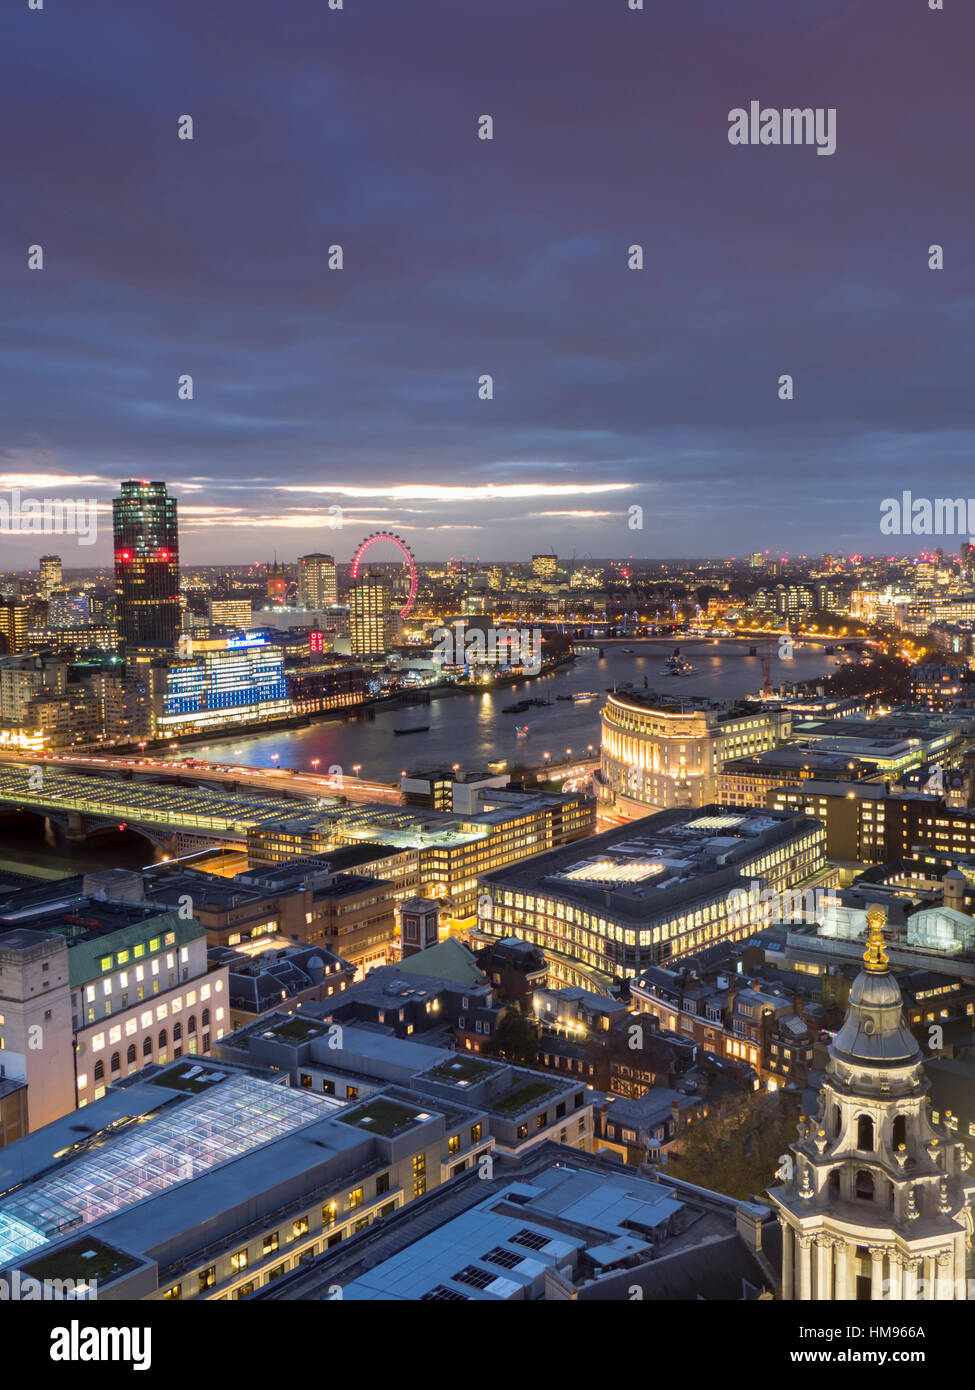 Cityscape from St. Paul's, London, England, United Kingdom - Stock Image